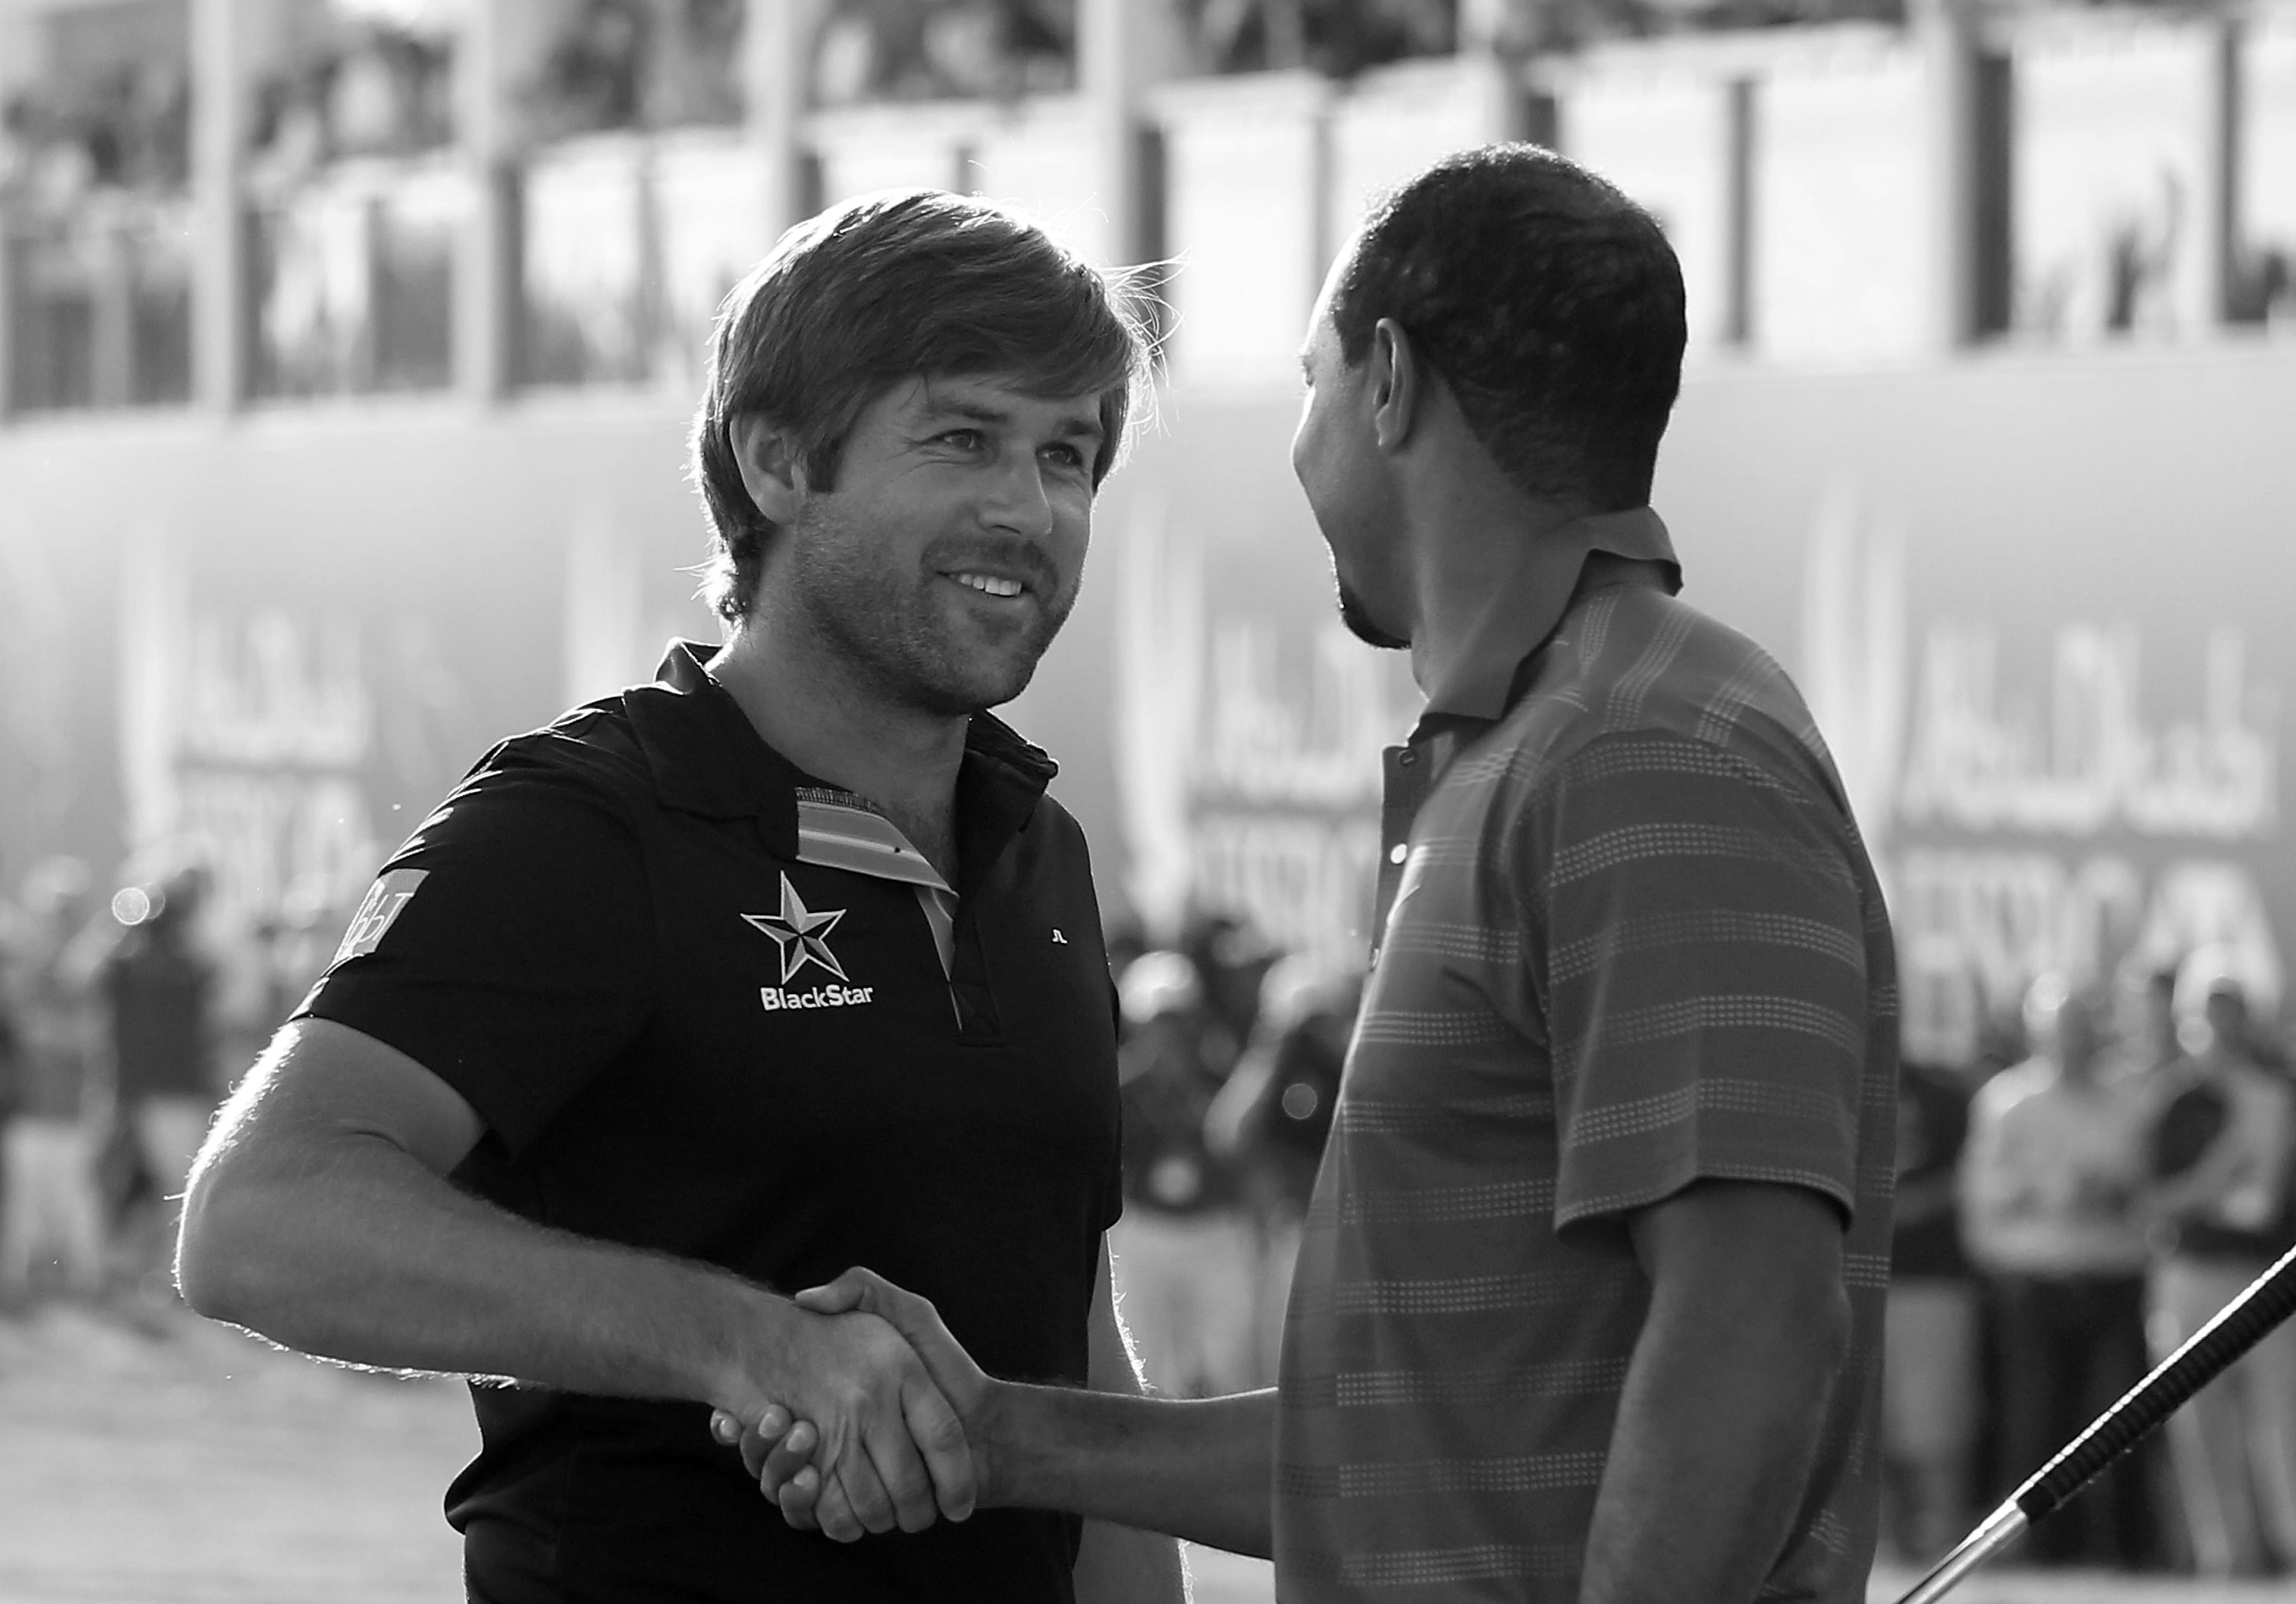 ABU DHABI, UNITED ARAB EMIRATES - JANUARY 29:  Robert Rock of England (L) is congratulated by Tiger Woods of the USA after winning The Abu Dhabi HSBC Golf Championship at Abu Dhabi Golf Club on January 29, 2012 in Abu Dhabi, United Arab Emirates.  (Photo by Andrew Redington/Getty Images)